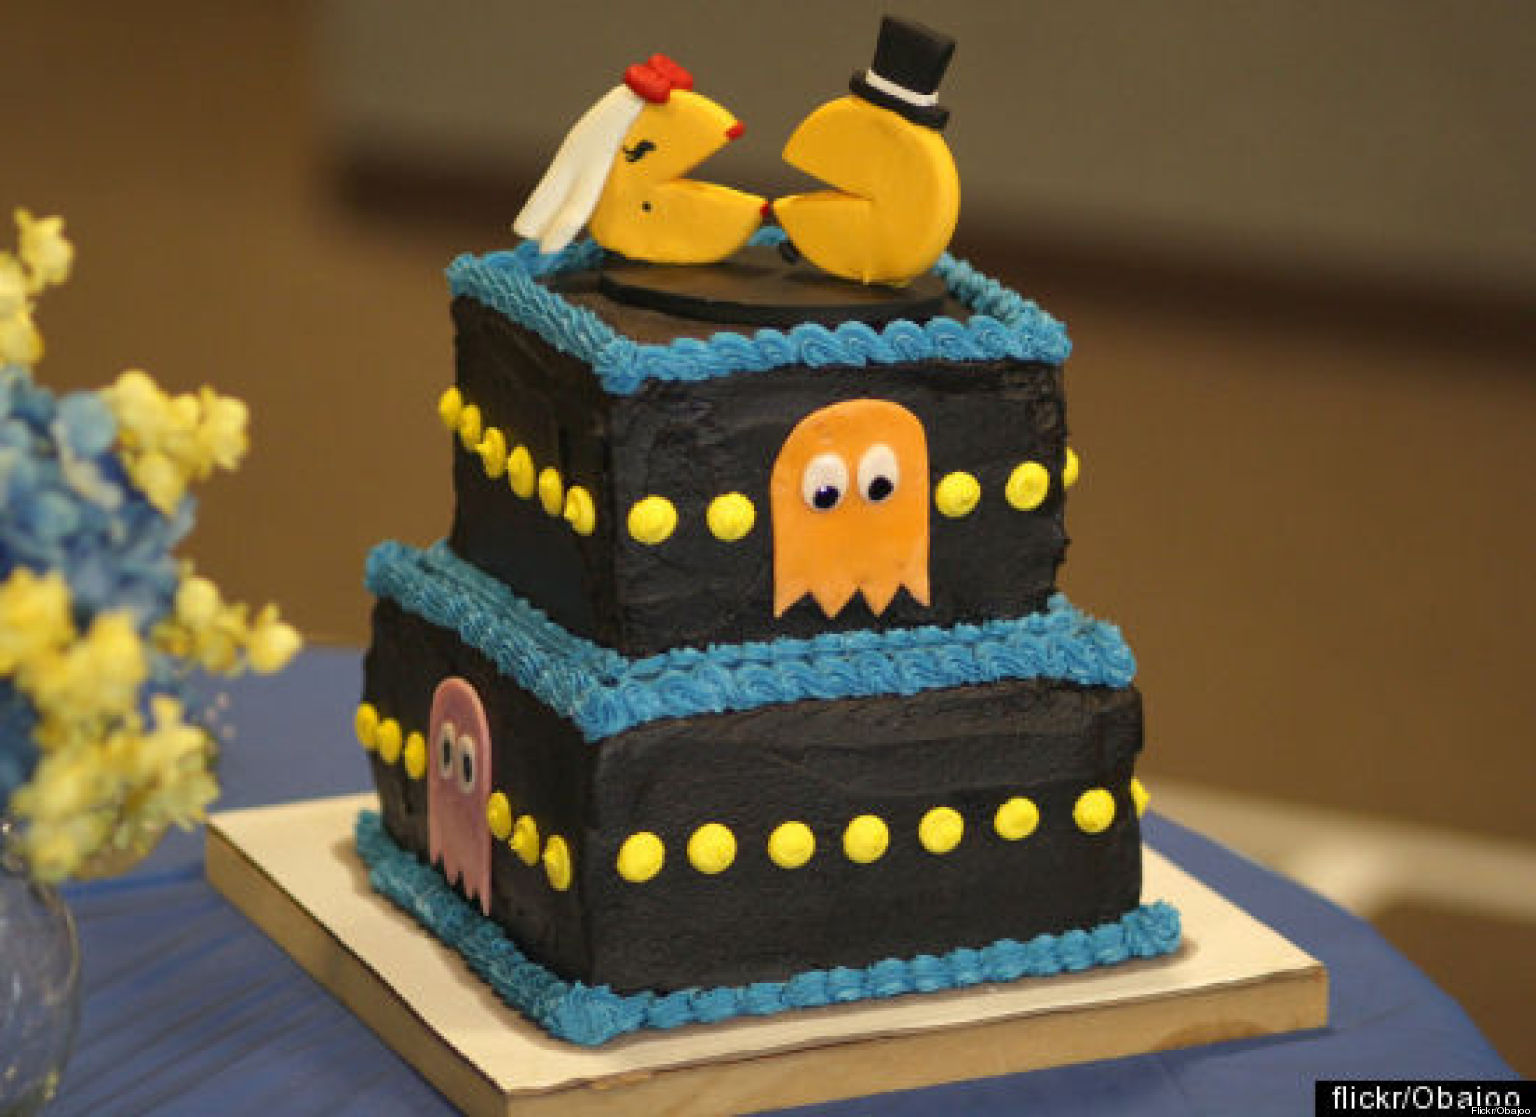 The Geekiest Wedding Cakes EVER PHOTOS